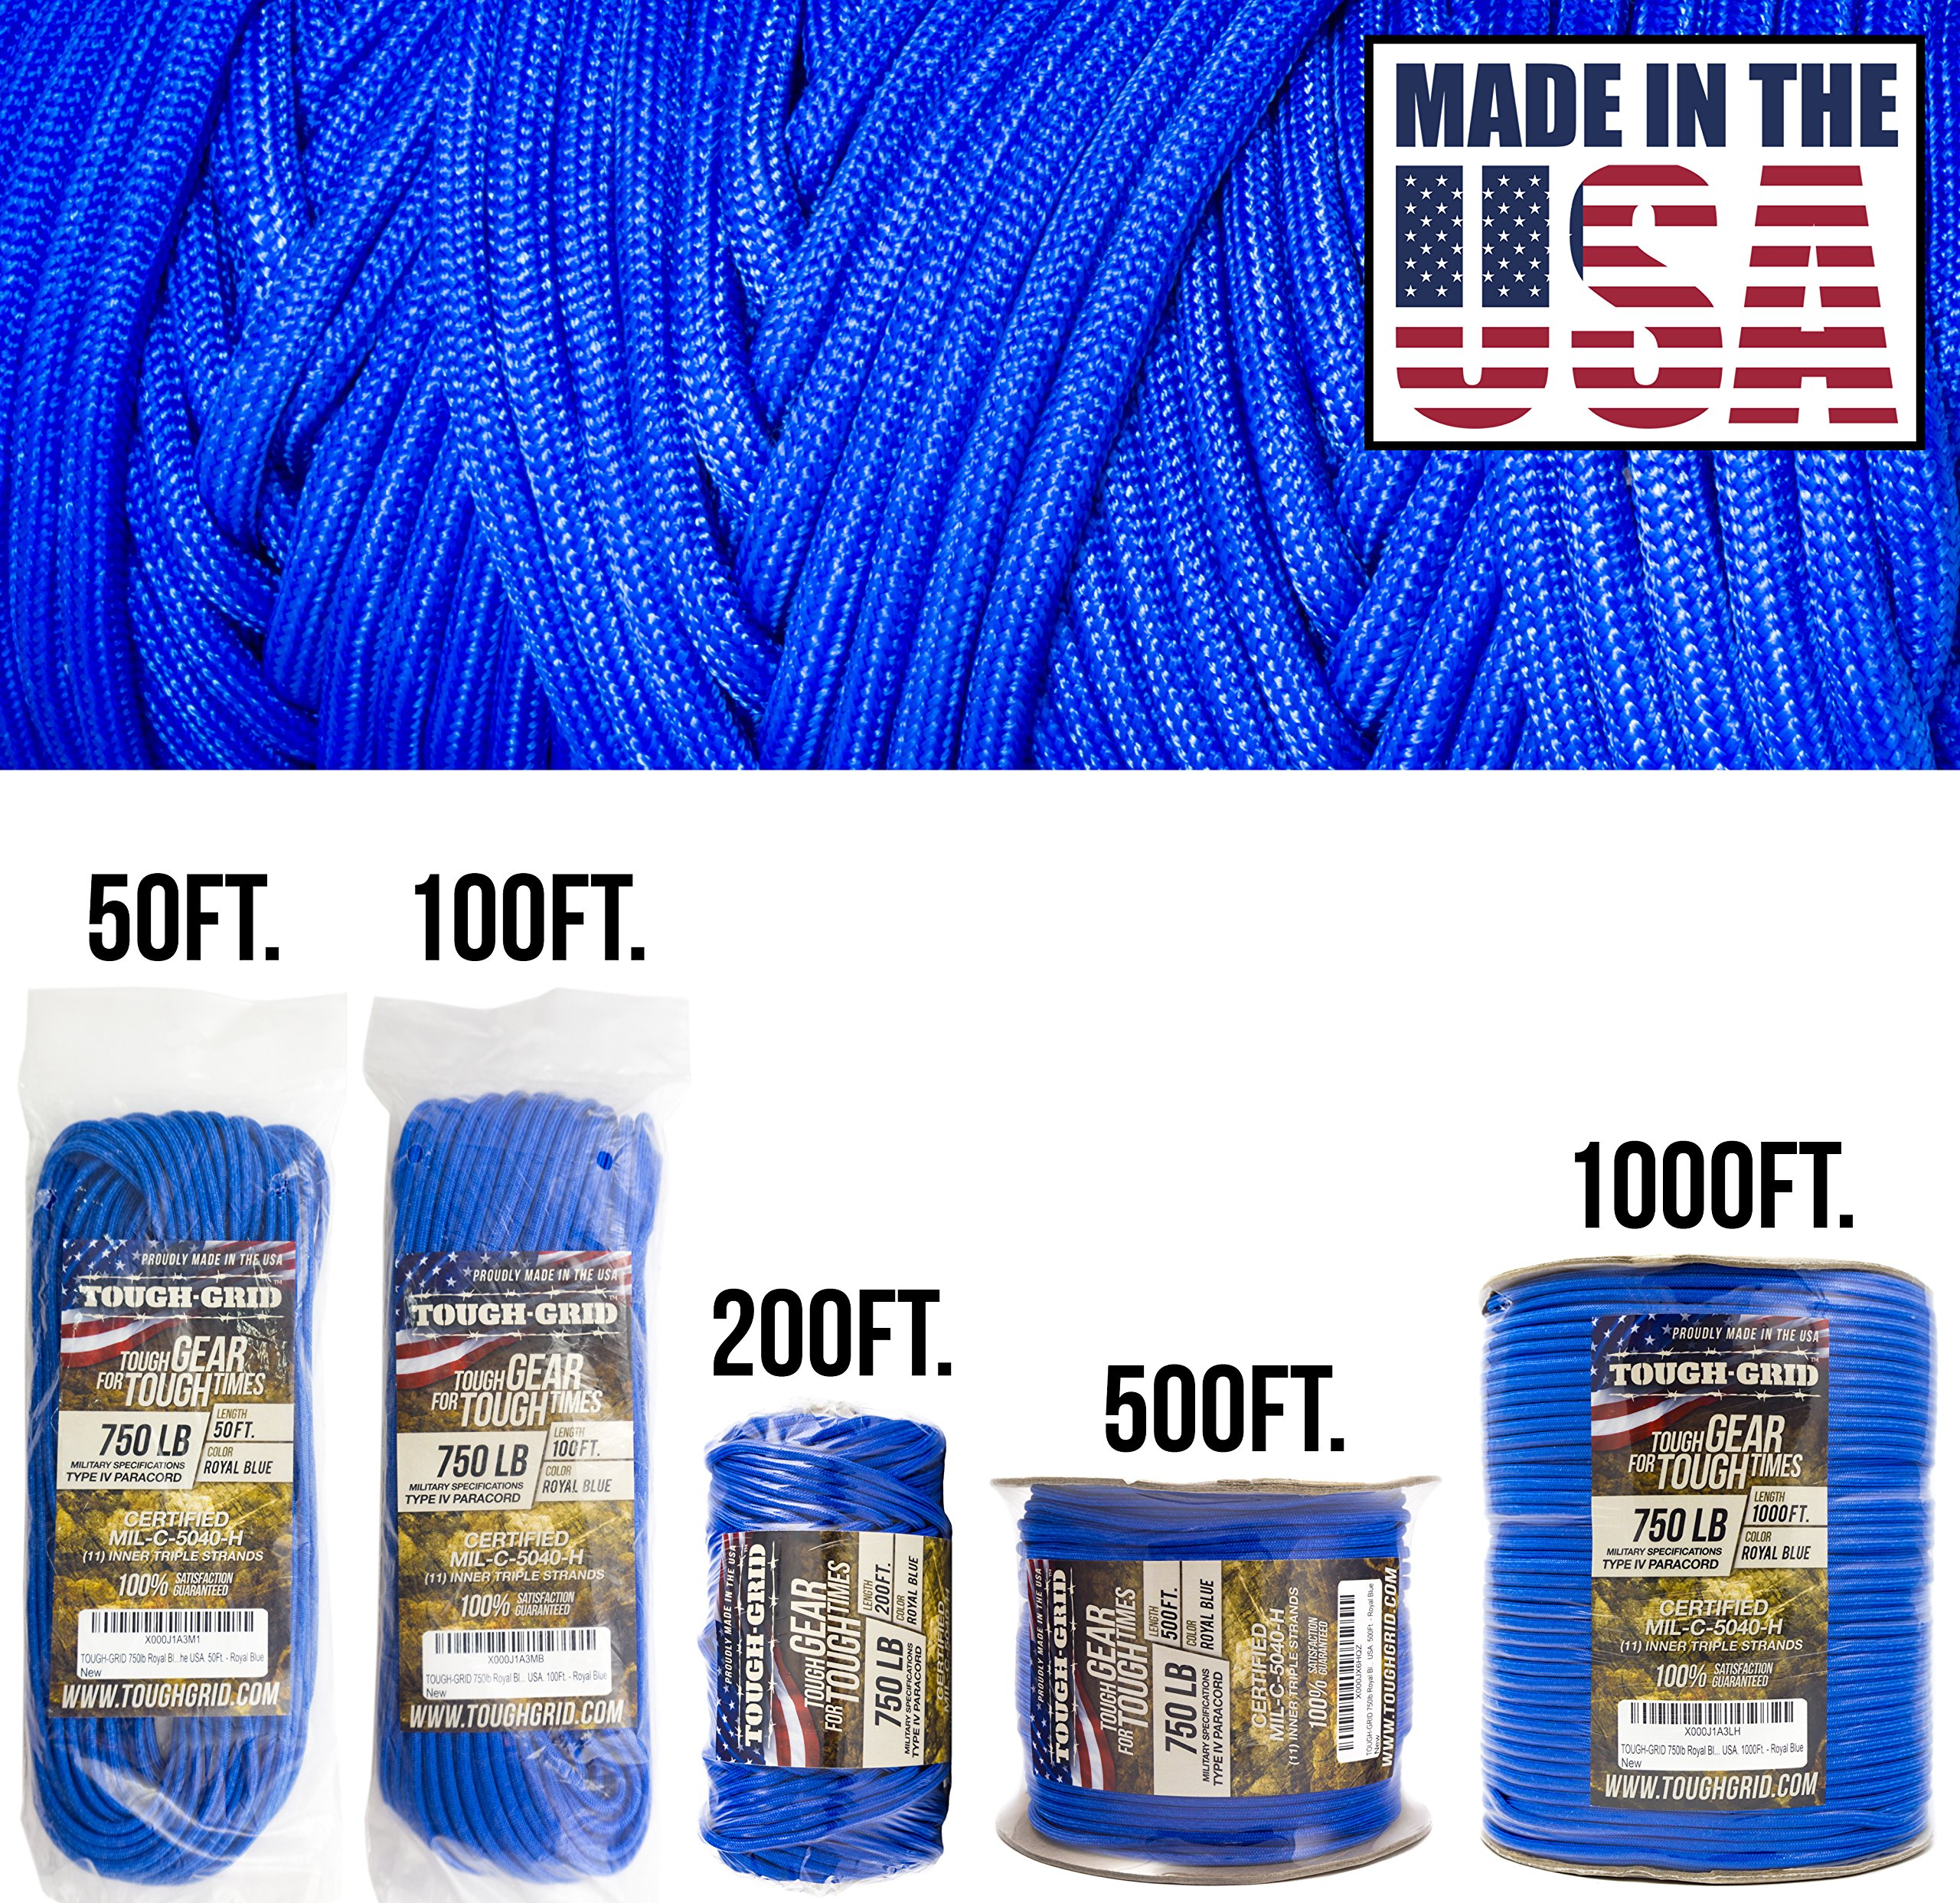 TOUGH-GRID 750lb Royal Blue Paracord/Parachute Cord - Genuine Mil Spec Type IV 750lb Paracord Used by The US Military (MIl-C-5040-H) - 100% Nylon - Made in The USA. 100Ft. - Royal Blue by TOUGH-GRID